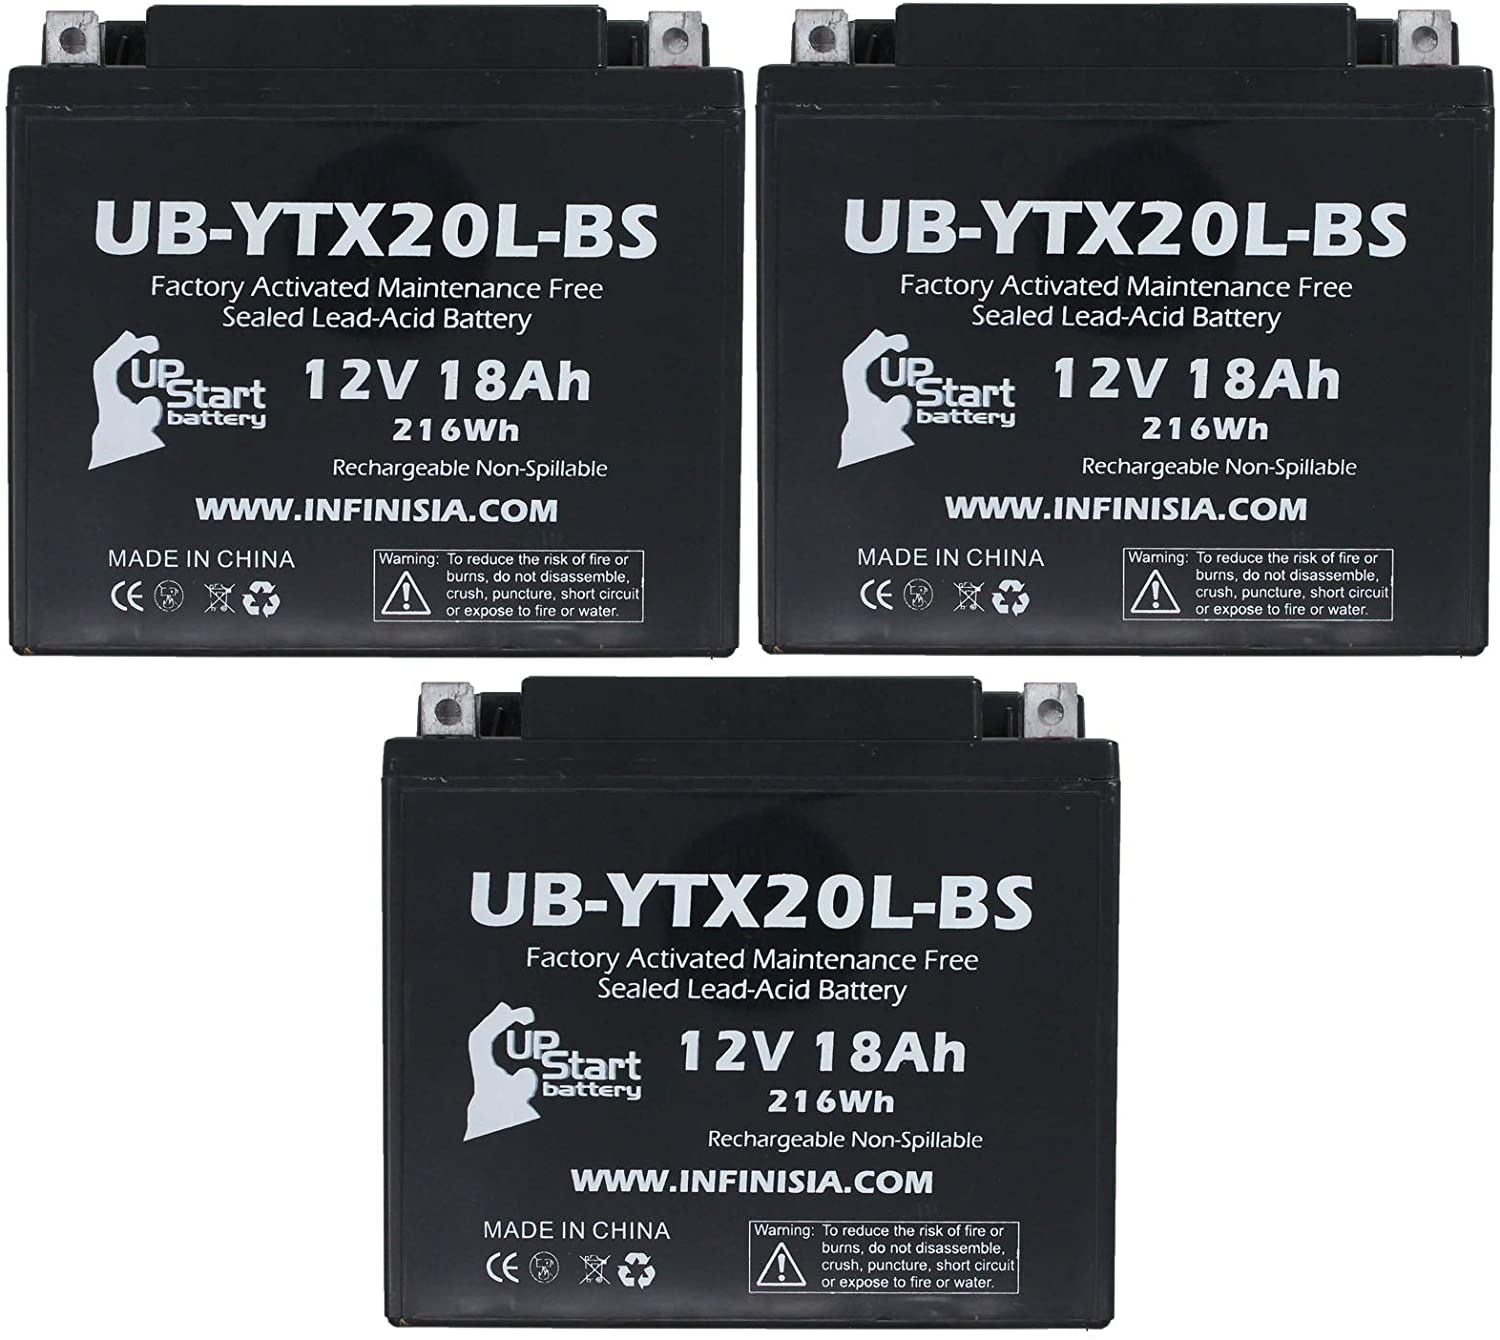 3-Pack UB-YTX20L-BS Battery Replacement for 2007 Kawasaki Jet Ski JT1500B, C, 250X, Ultra LX, 260(L) X, 300(L) X 1500 CC Personal Watercraft - Factory Activated, Maintenance Free Battery - 12V, 18AH